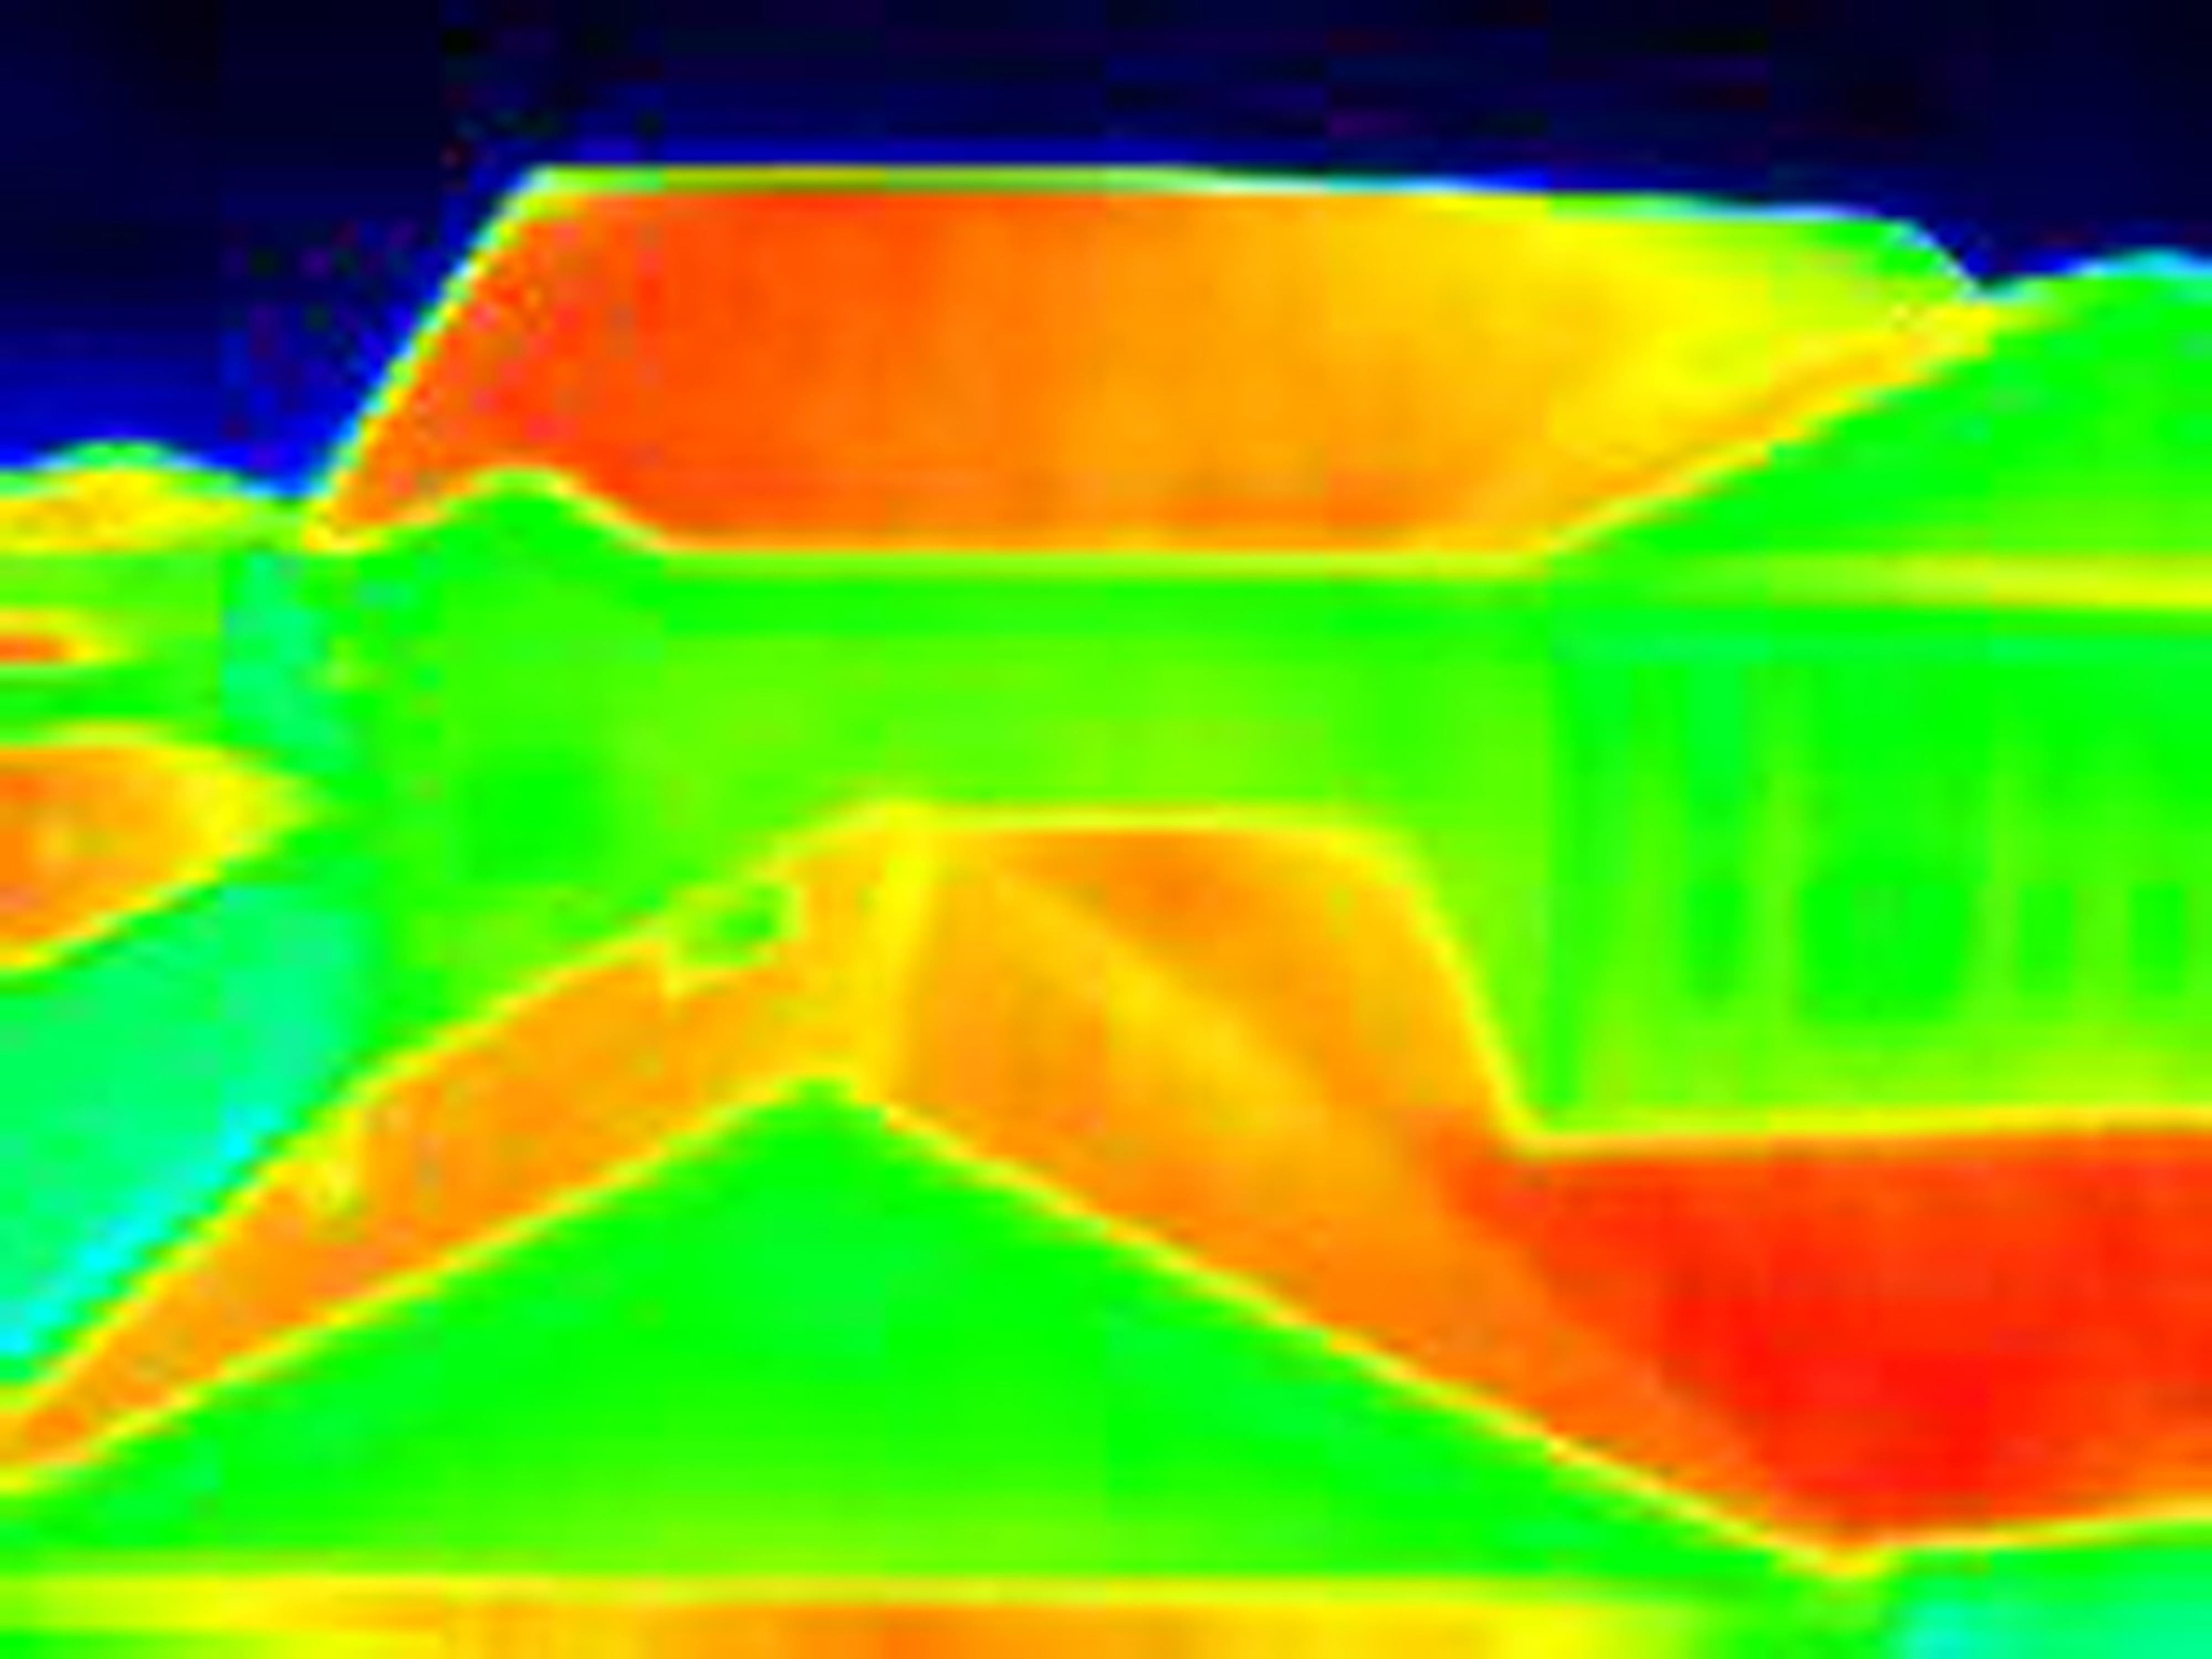 Drone FLIR Thermal Image